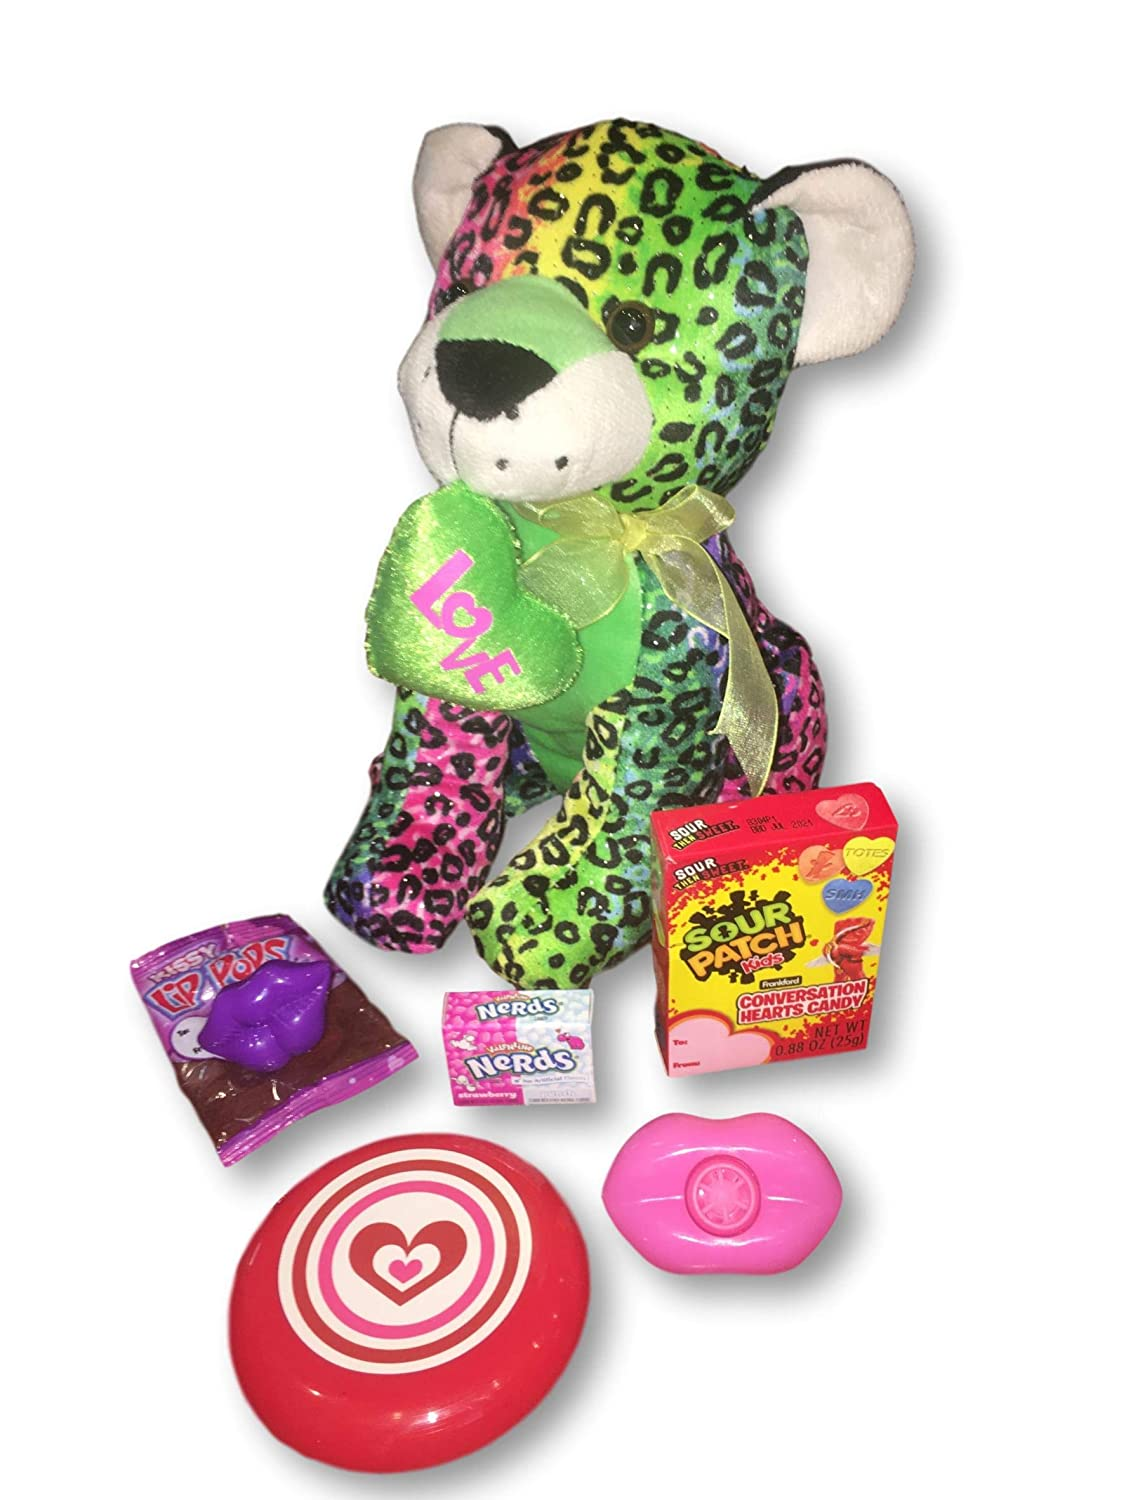 Amazon.com : Gift Valentine - Girls Valentines Day Plush LOVE Leopard & Sour Patch Conversation Hearts, Nerds, Kissy Lip Pops & Fun Items (Rainbow Sparkle ...